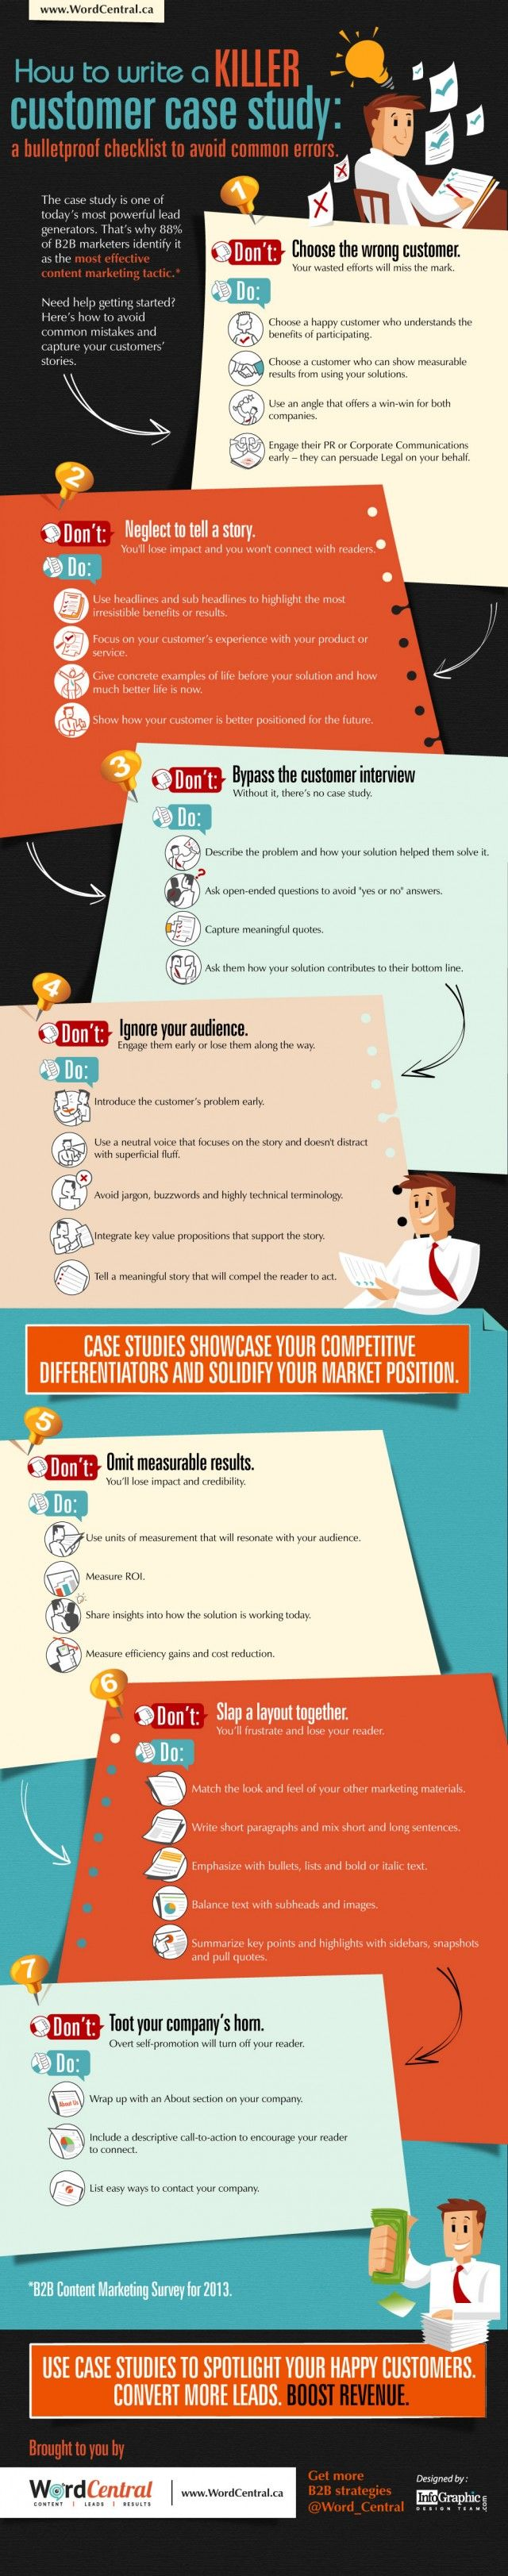 6 Rules for Creating Powerful Client Case Studies